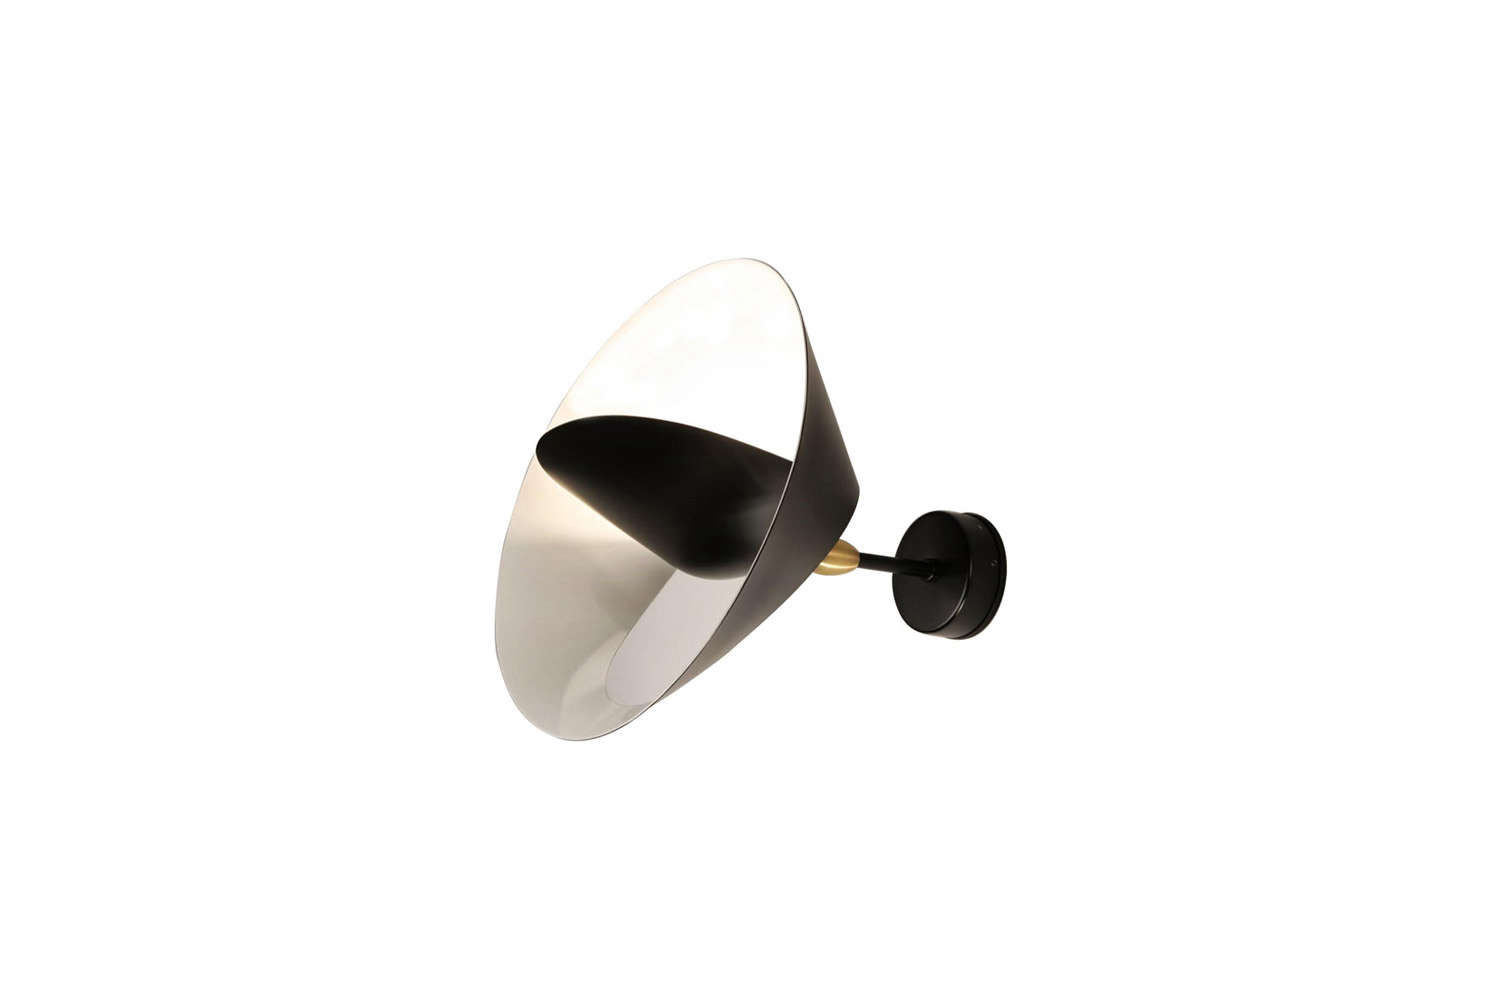 The midcentury French Serge Mouille Saturnus Wall Sconce is $